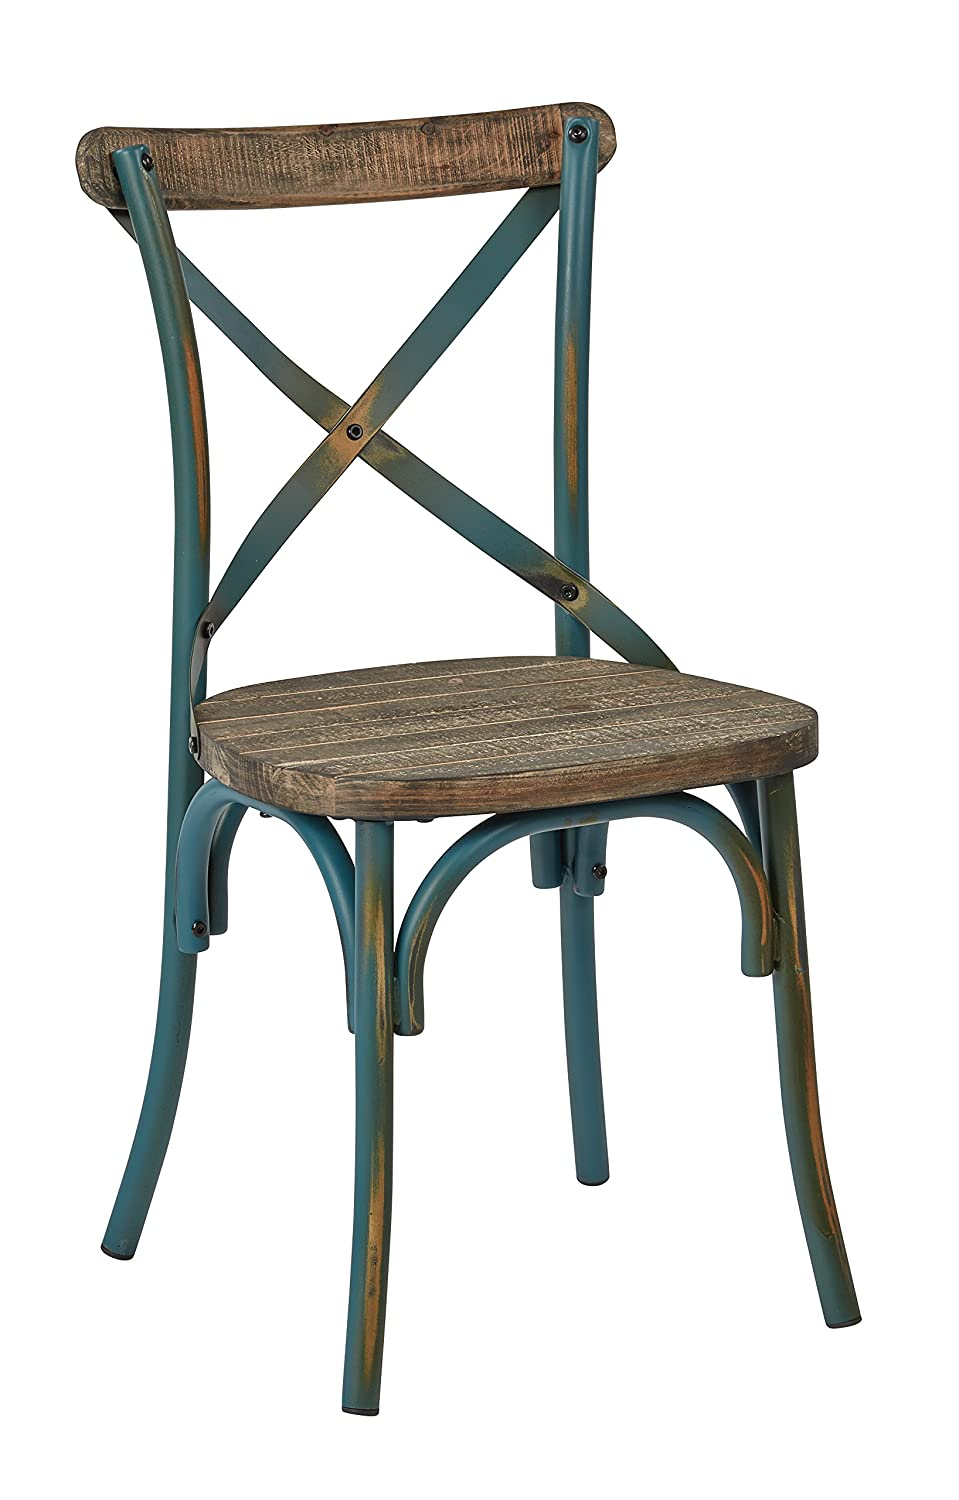 x back dining chairs. Amazon.com - OSP Designs Somerset X-Back Antique Metal Chair With Hardwood Rustic Seat Finish, Turquoise/Walnut Chairs X Back Dining